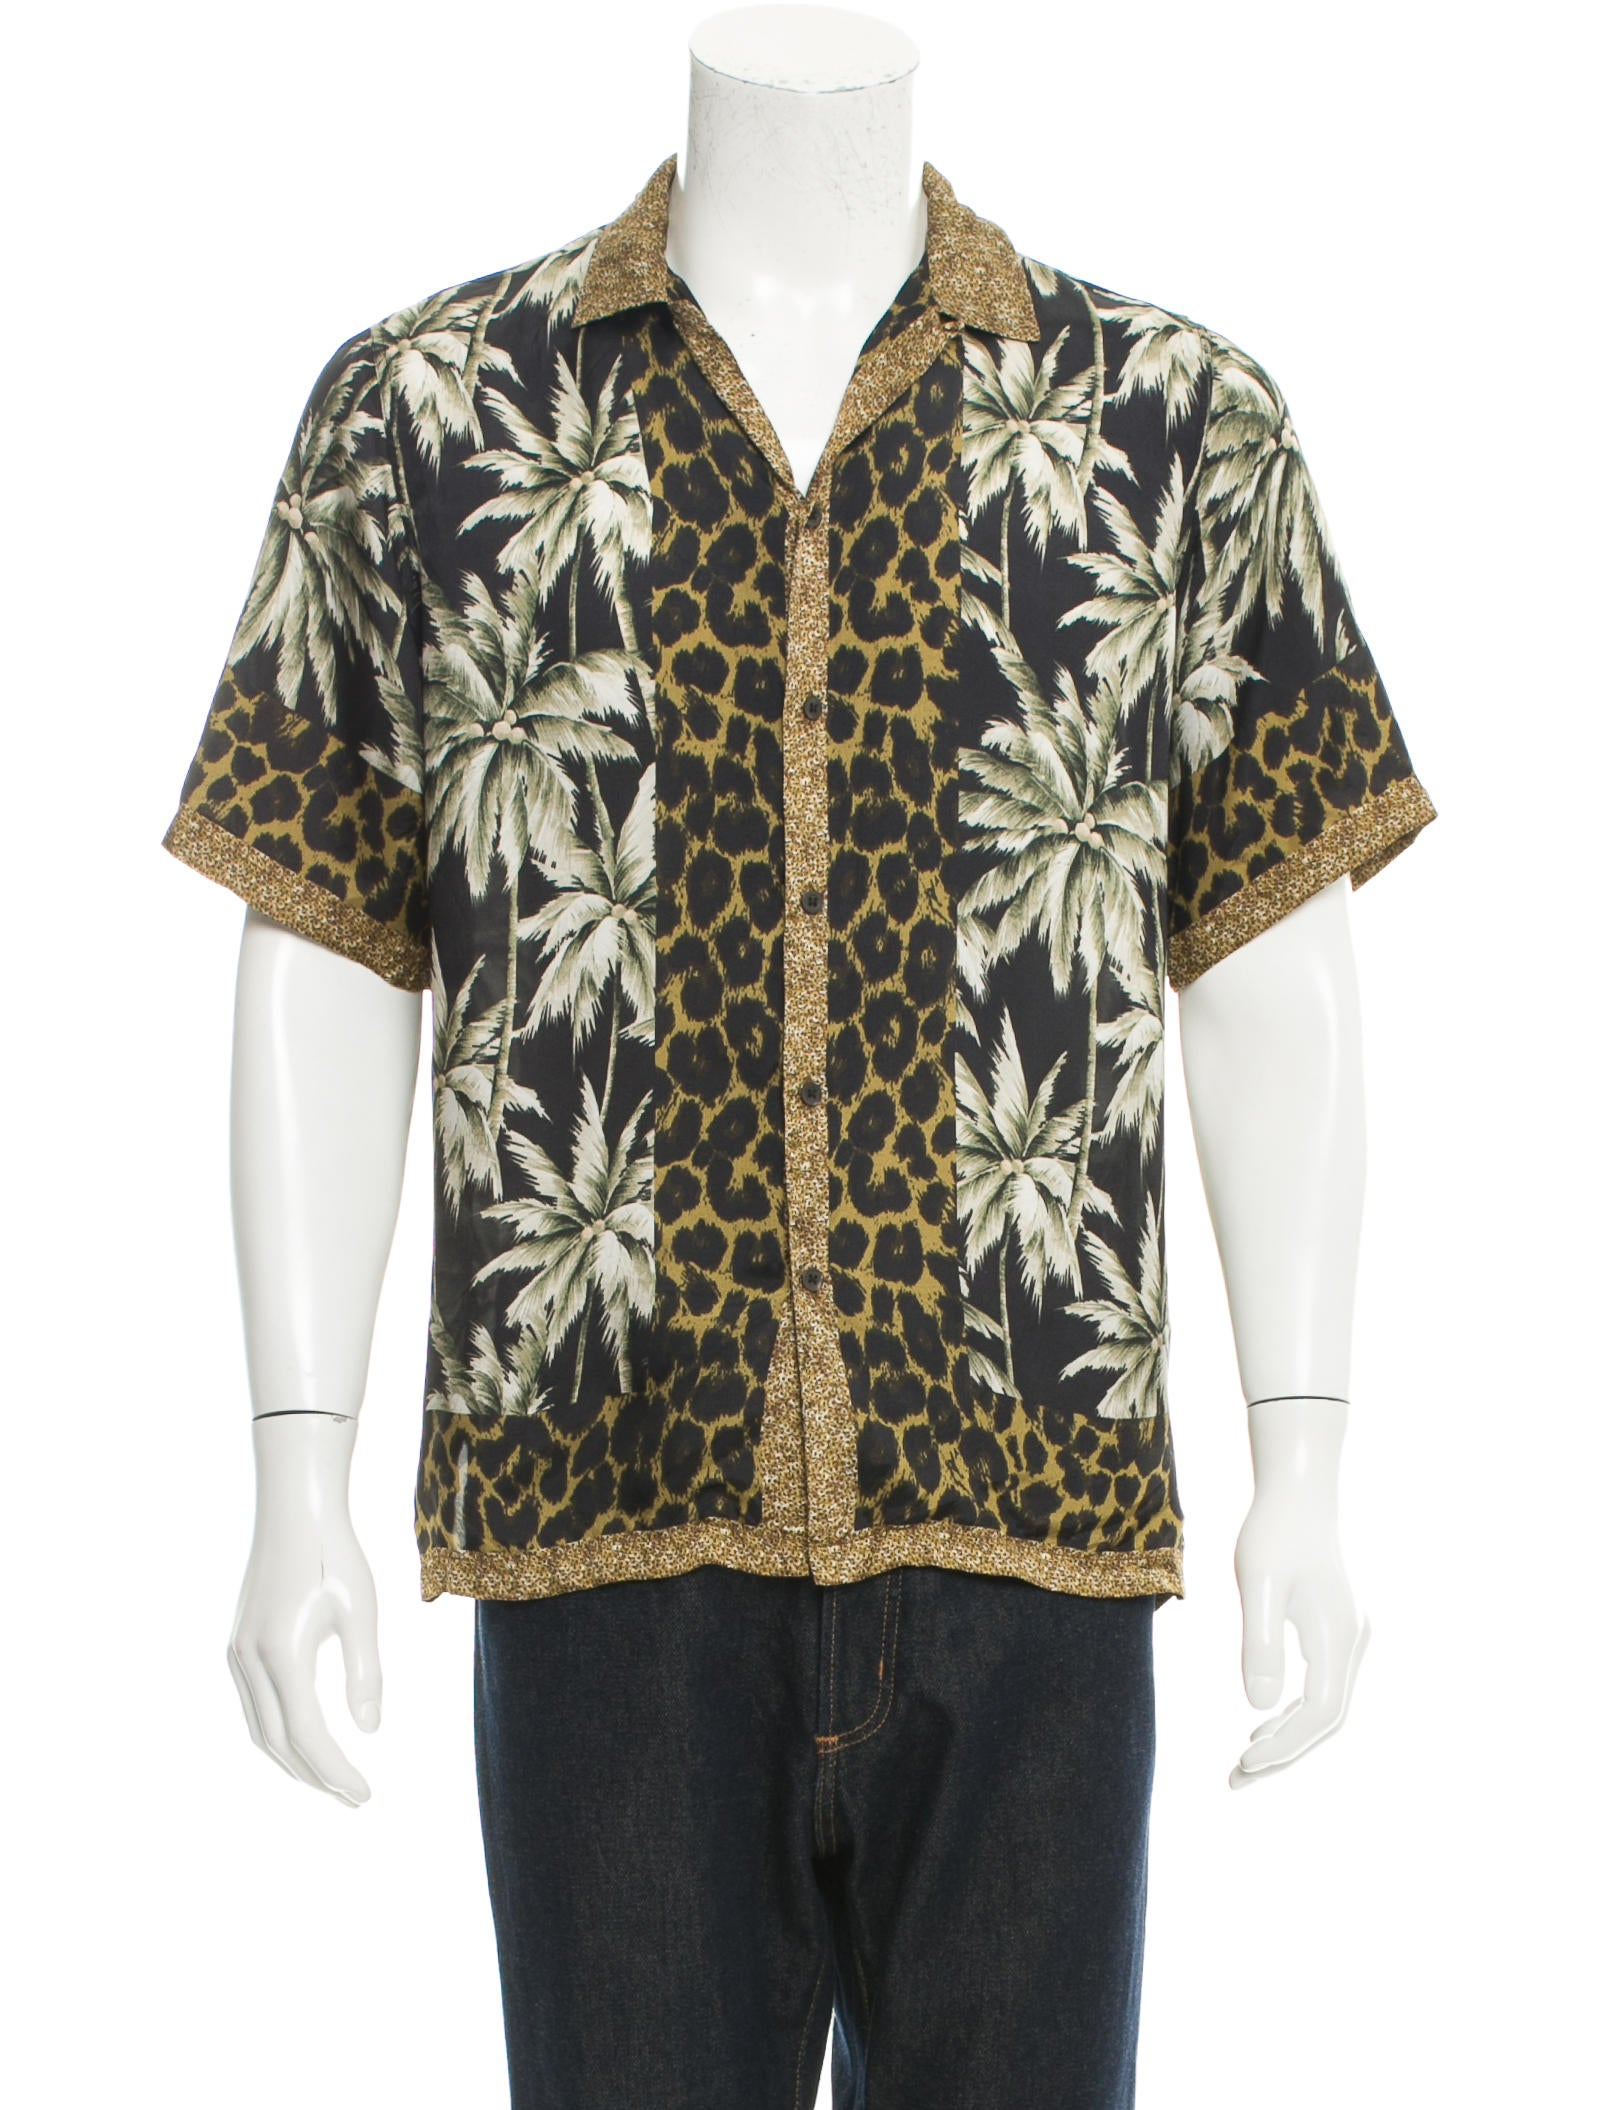 56b9efcf4b Dries Van Noten Carlton Camp Tropical Print Shirt - Clothing ...